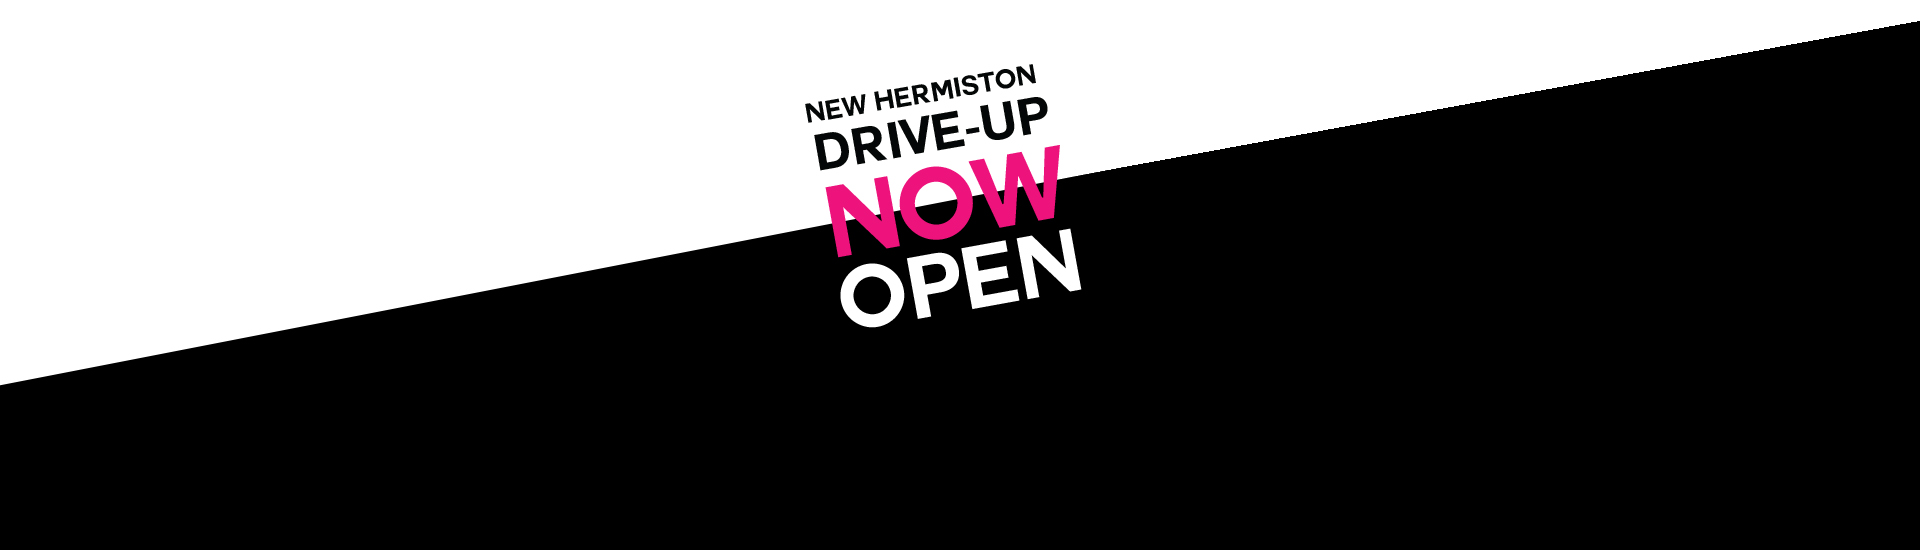 web-banner-defy-expectations-NEW-HERMISTON-DRIVE-UP